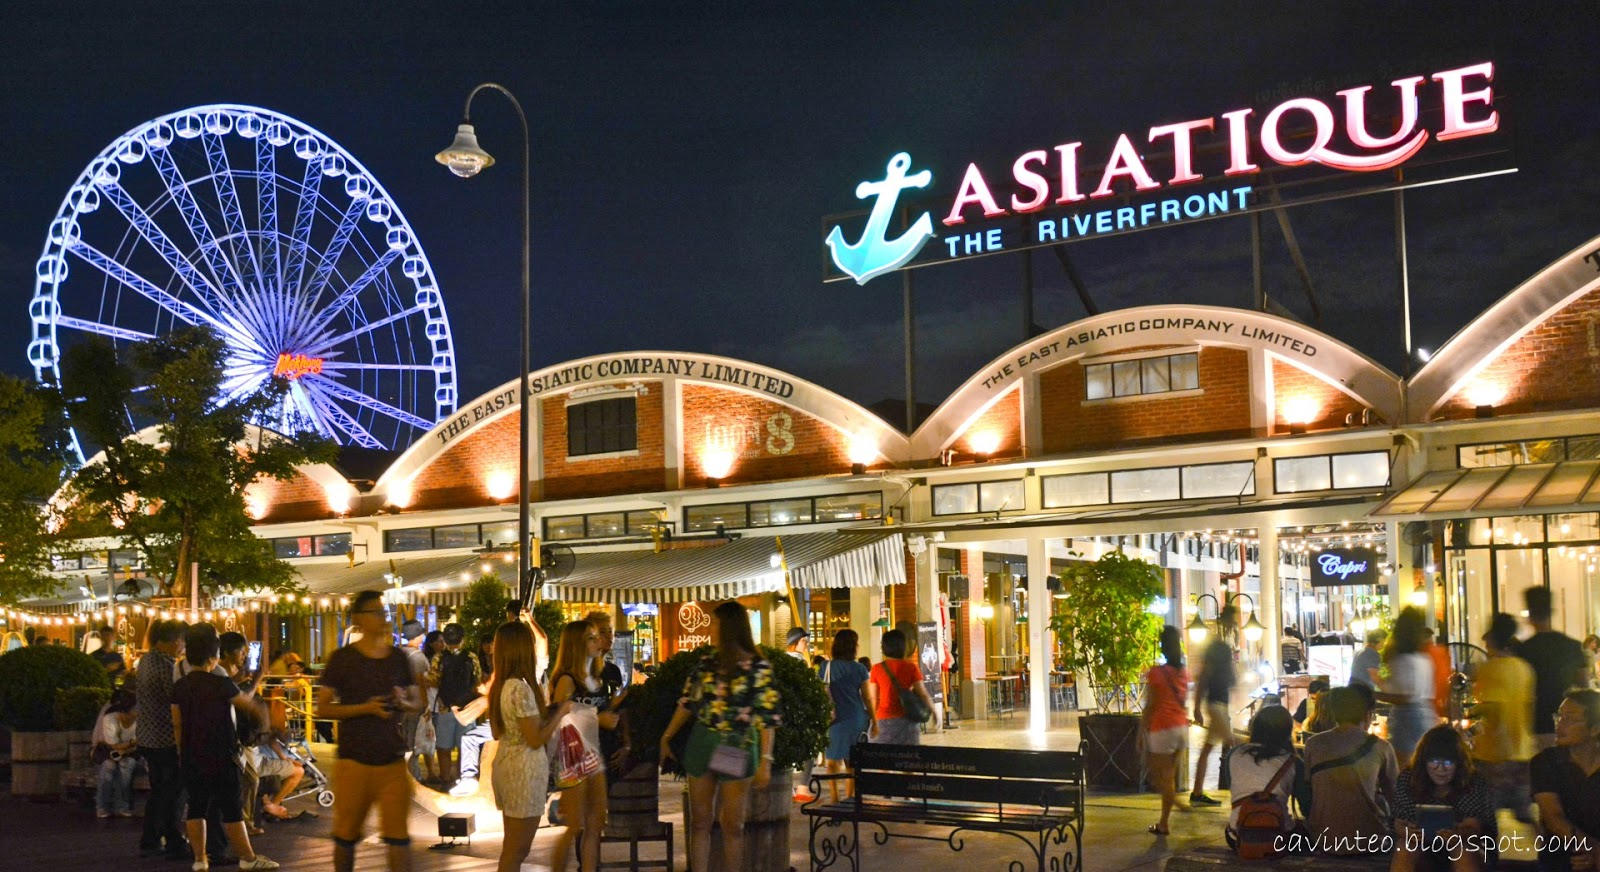 Asiatique The Riverfront Bangkok Map,Tourist Attractions in Bangkok Thailand,Map of Asiatique The Riverfront Bangkok,Things to do in Bangkok Thailand,Asiatique The Riverfront Bangkok accommodation destinations attractions hotels map reviews photos pictures